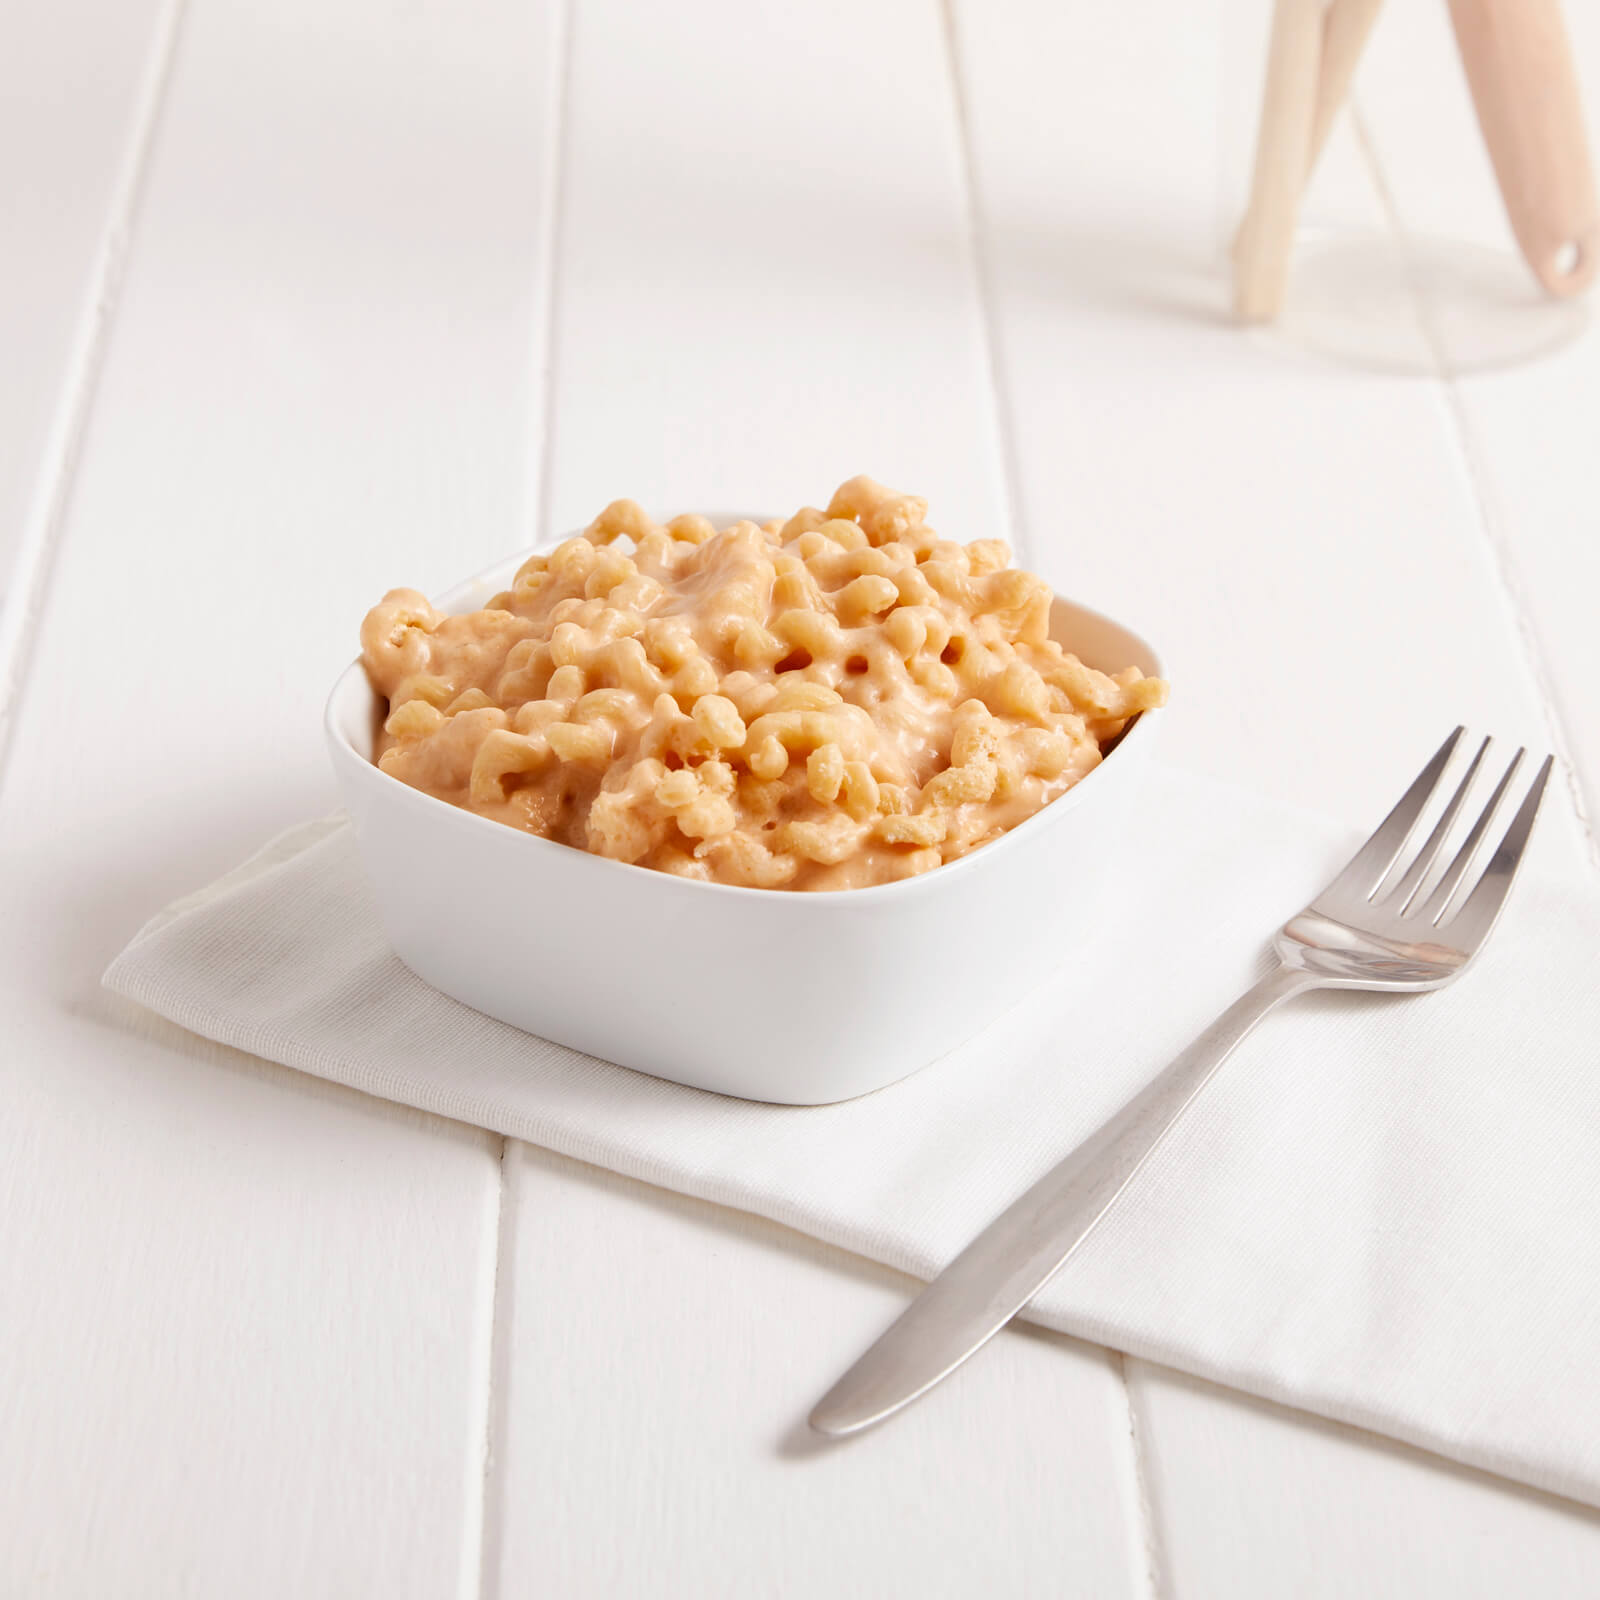 Meal Replacement Macaroni and Cheese